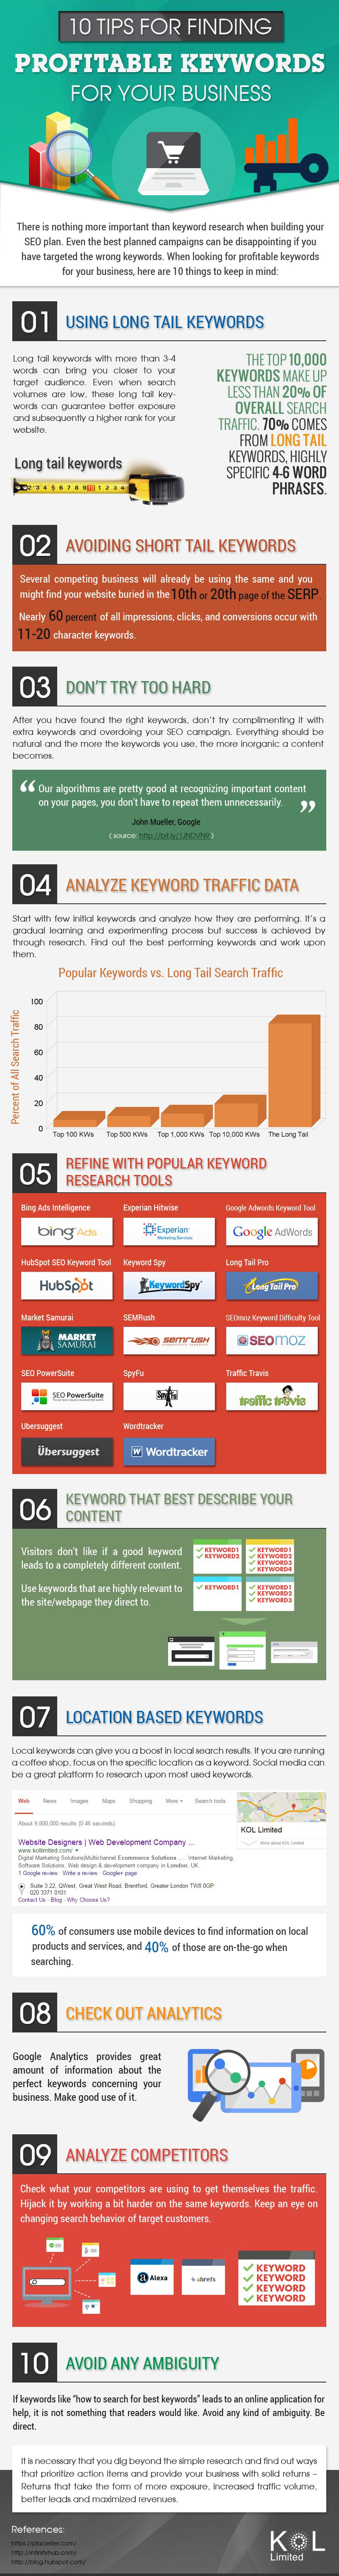 10-Tips-for-Finding-Profitable-Keywords-for-Your-Business